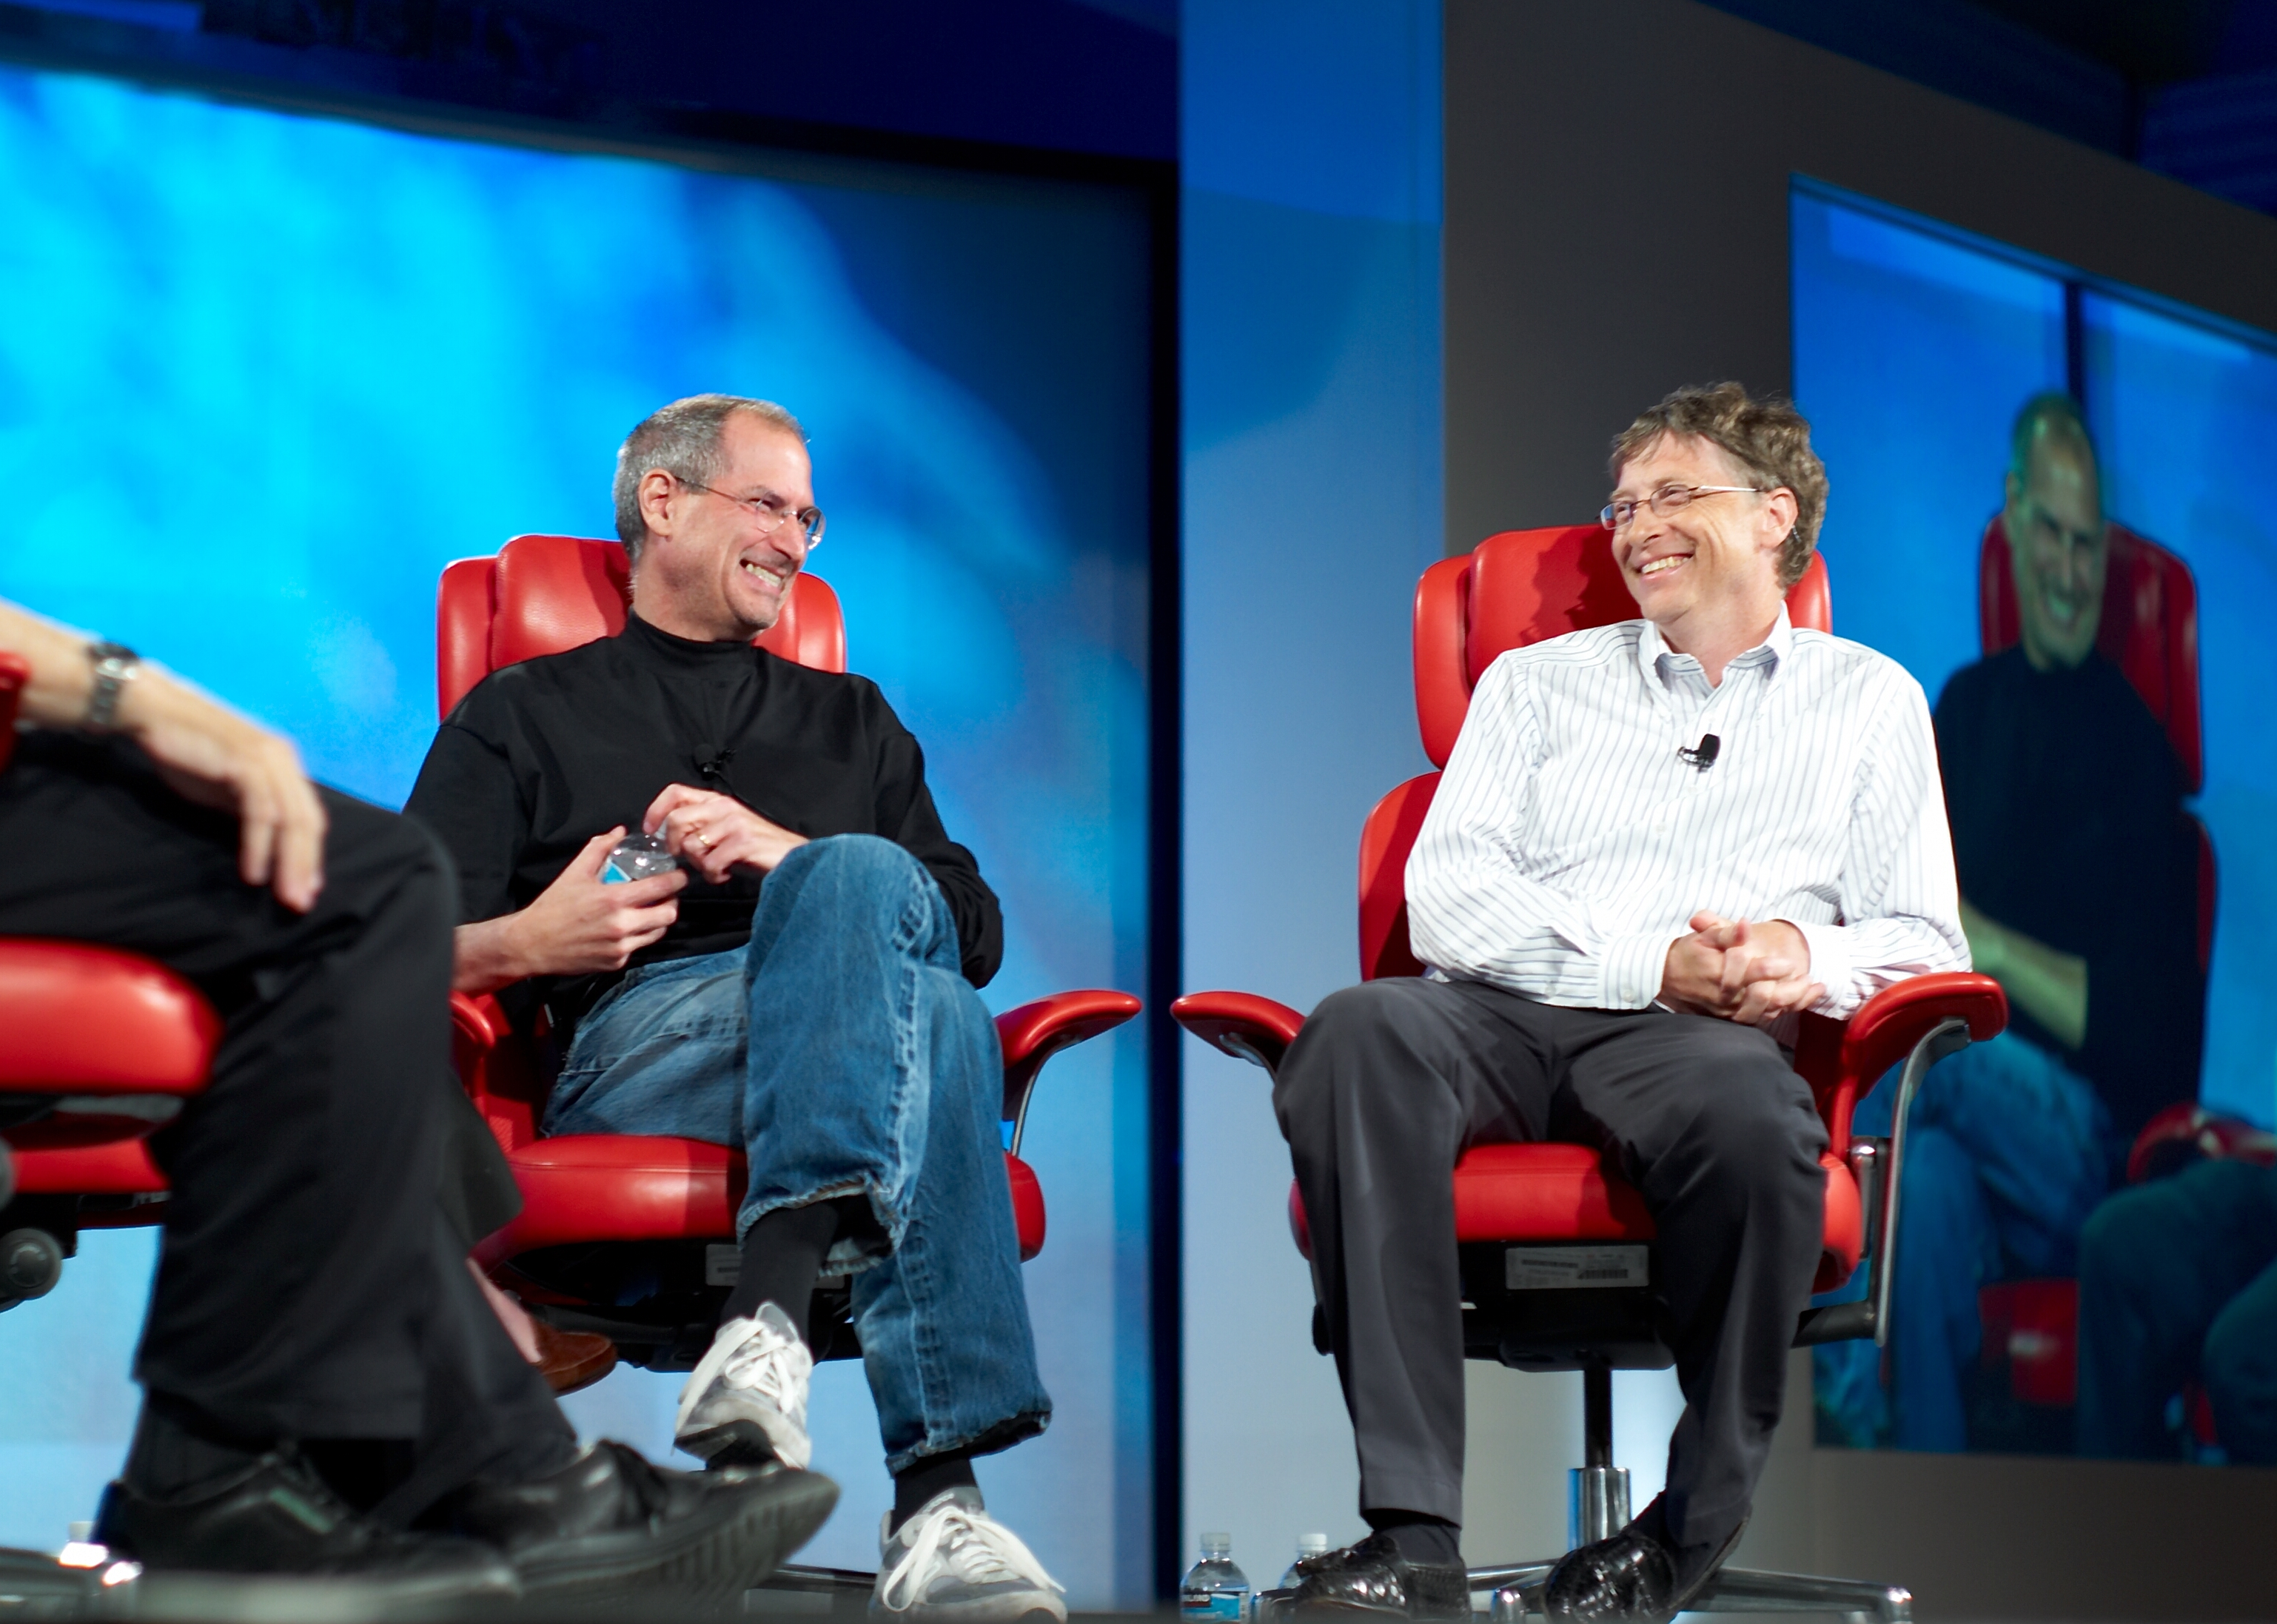 has steve jobs or bill gates Image: steve jobs and bill gates speaking together at the all things digital conference in california, 2007 it seems unlikely that apple would be where it is today without microsoft, or microsoft without apple looking back at steve jobs' tenure at apple, it's impossible to separate the role microsoft and bill gates played.